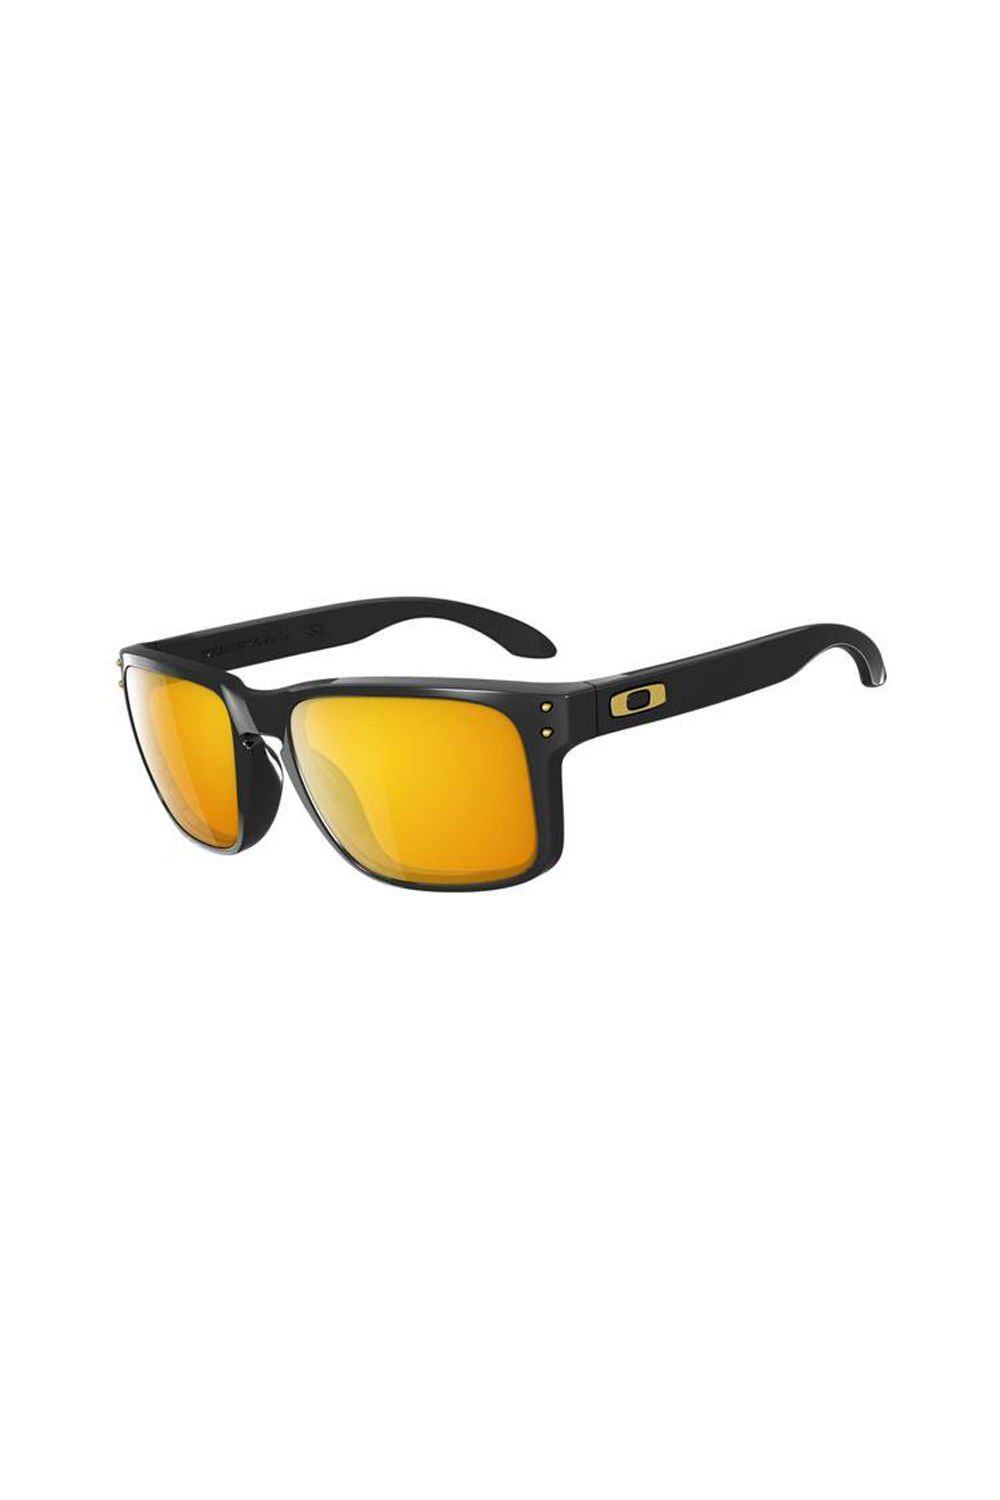 70e7a0745c Oakley Shaun White Holbrook Mens Sunglasses - Polished Black 24K Iridium   150